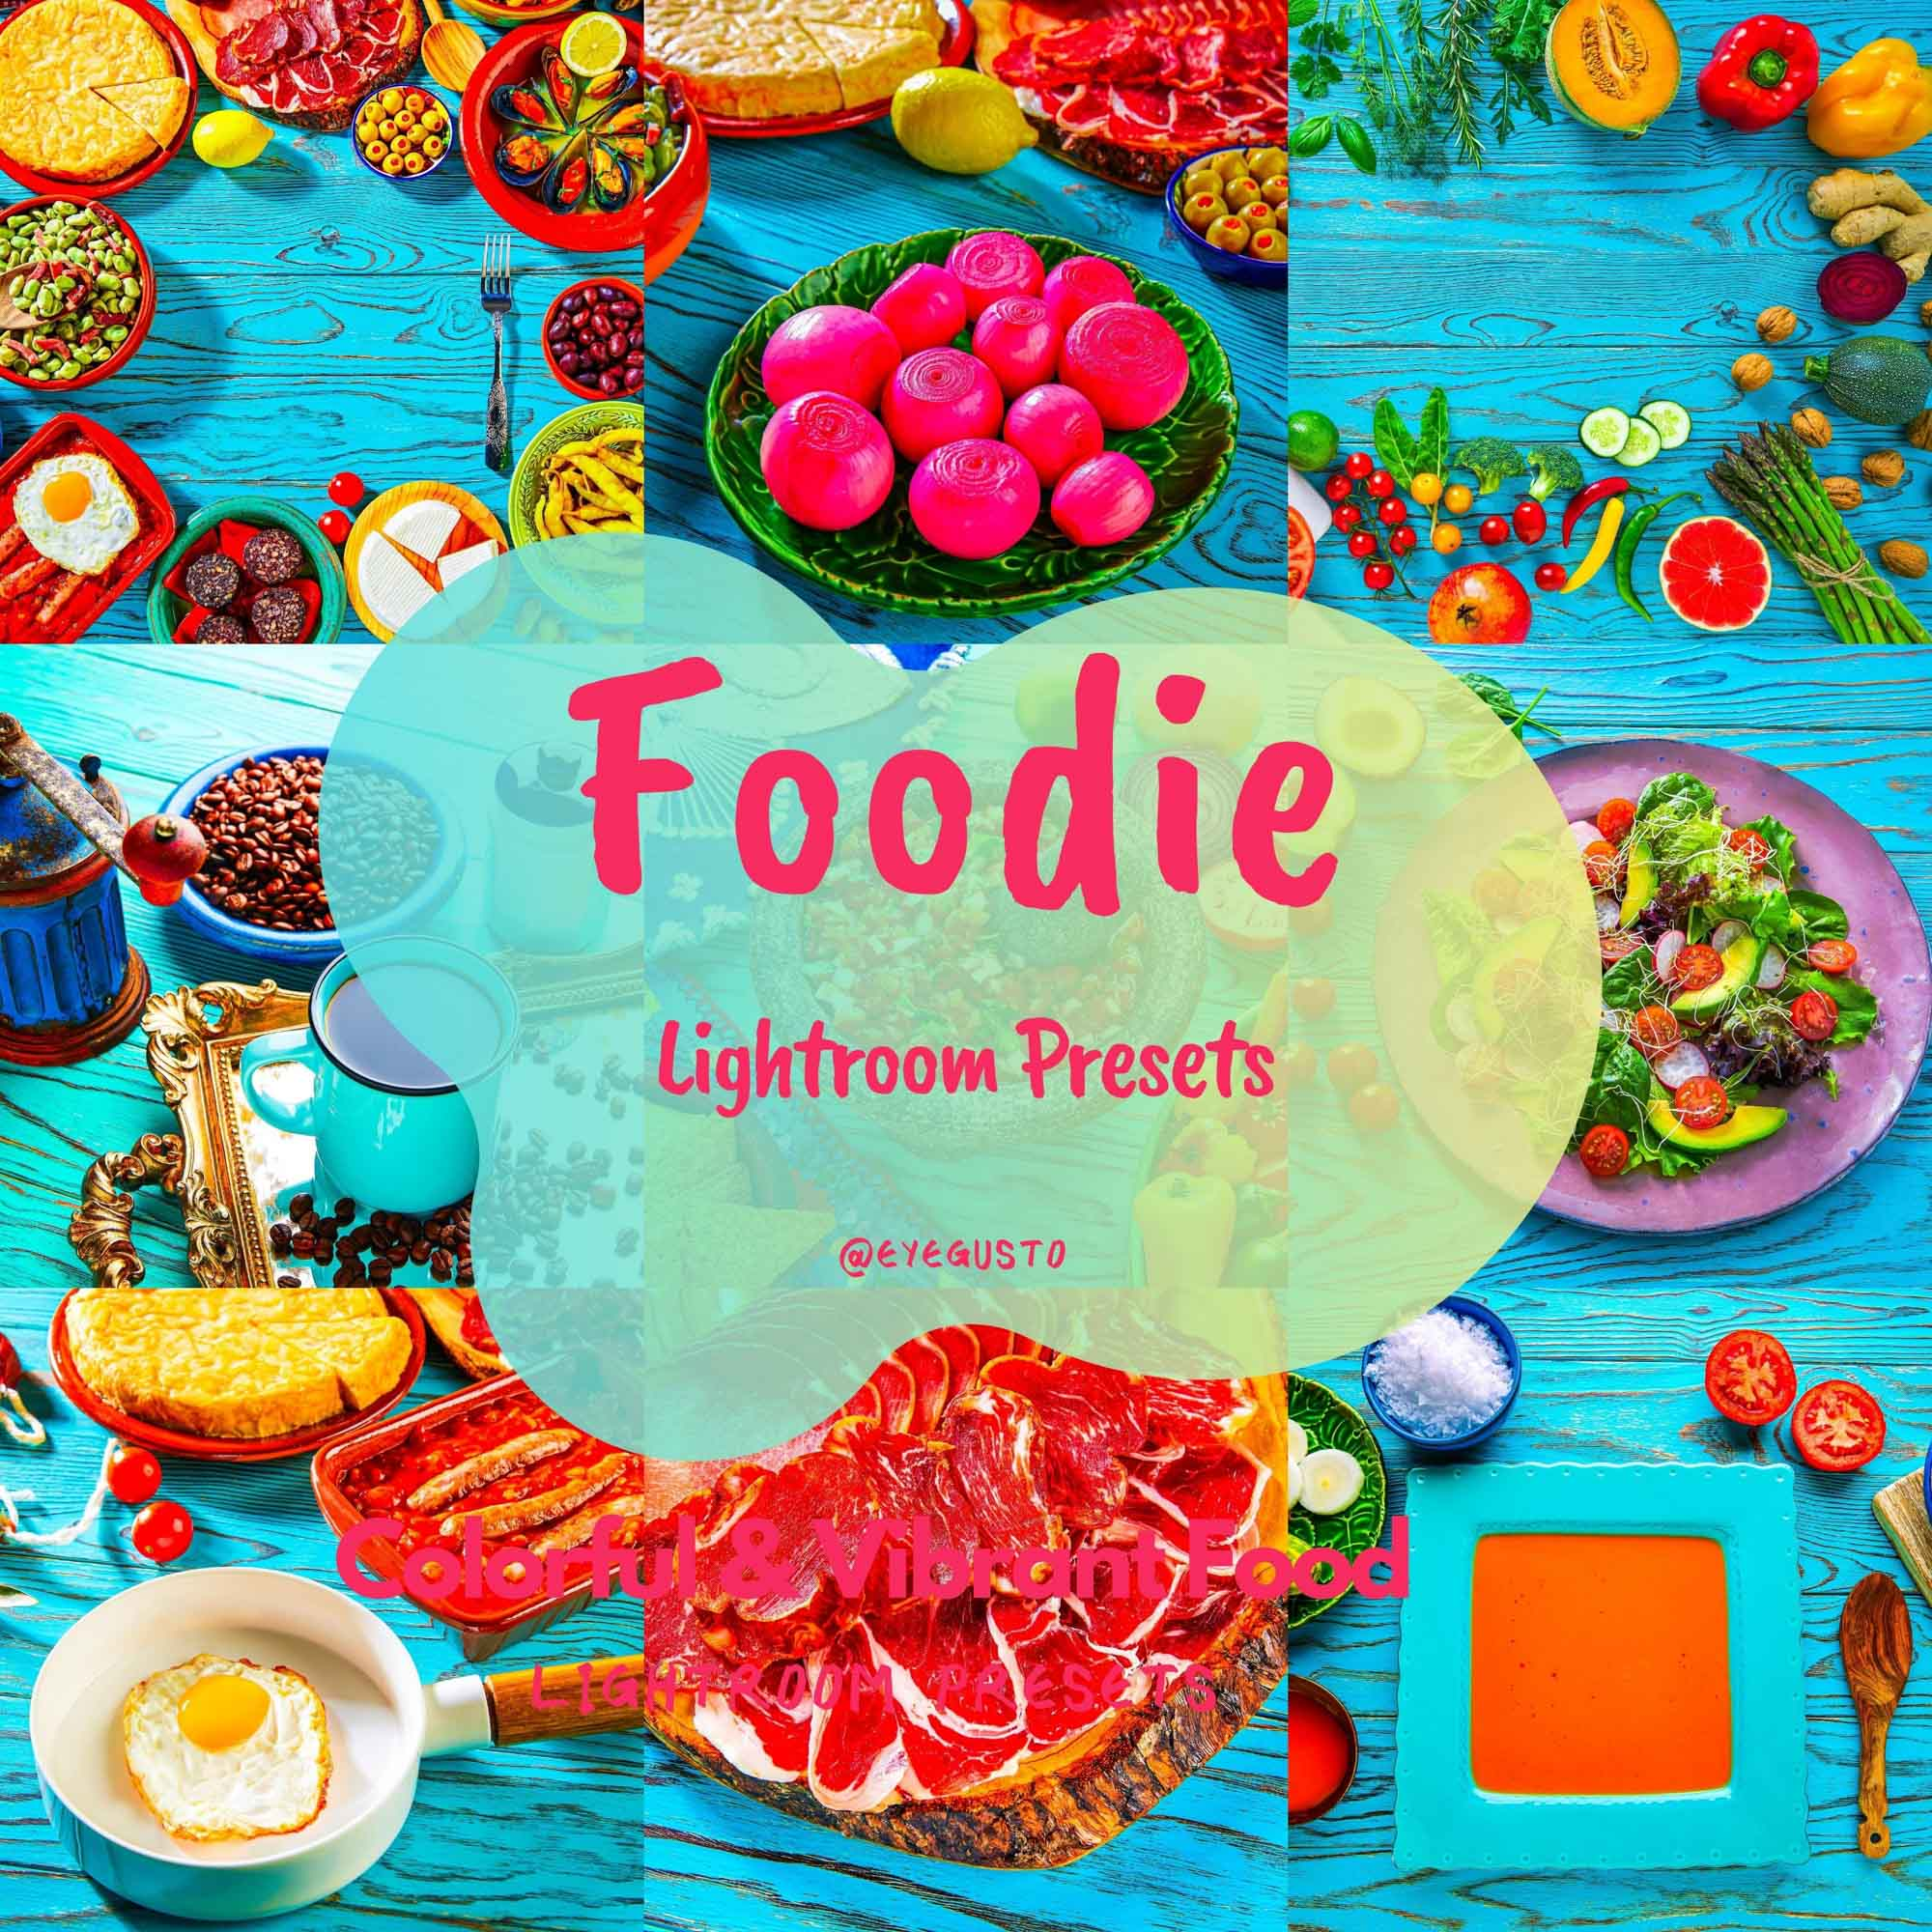 Lightroom Food Presets Mobile Instagram